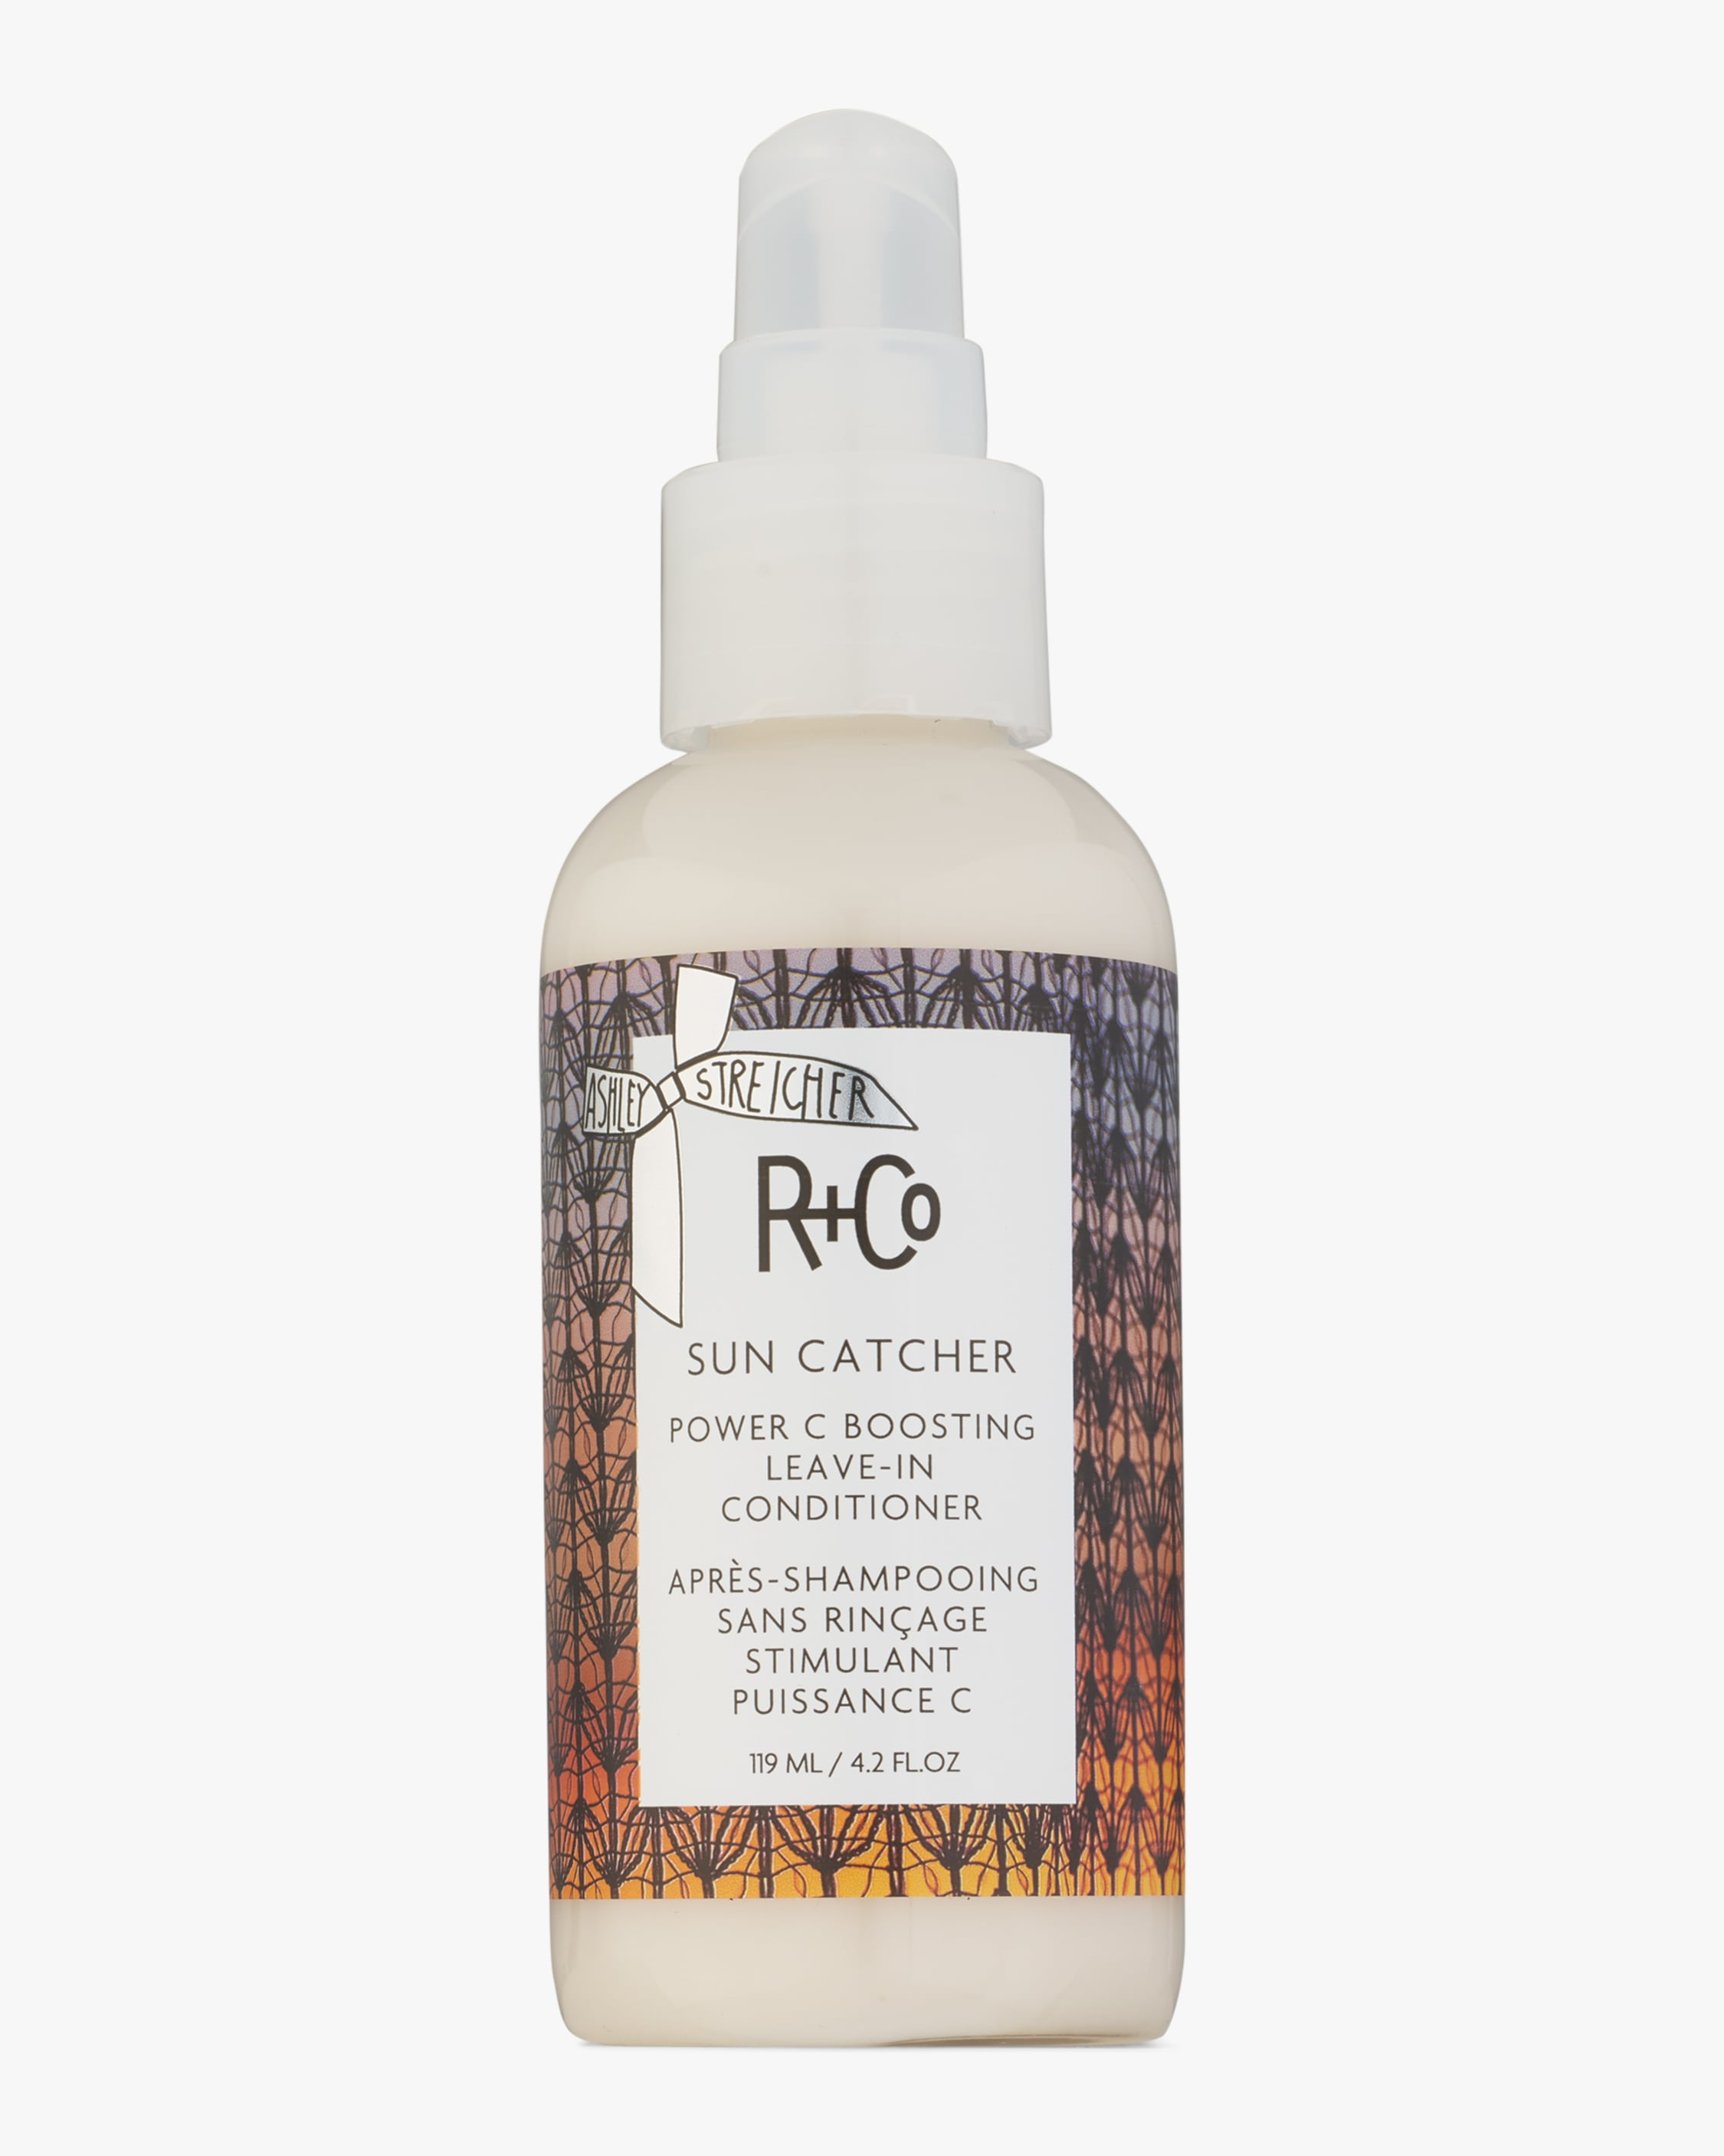 R+Co Sun Catcher Power C Boosting Leave-in Conditioner 119ml 2